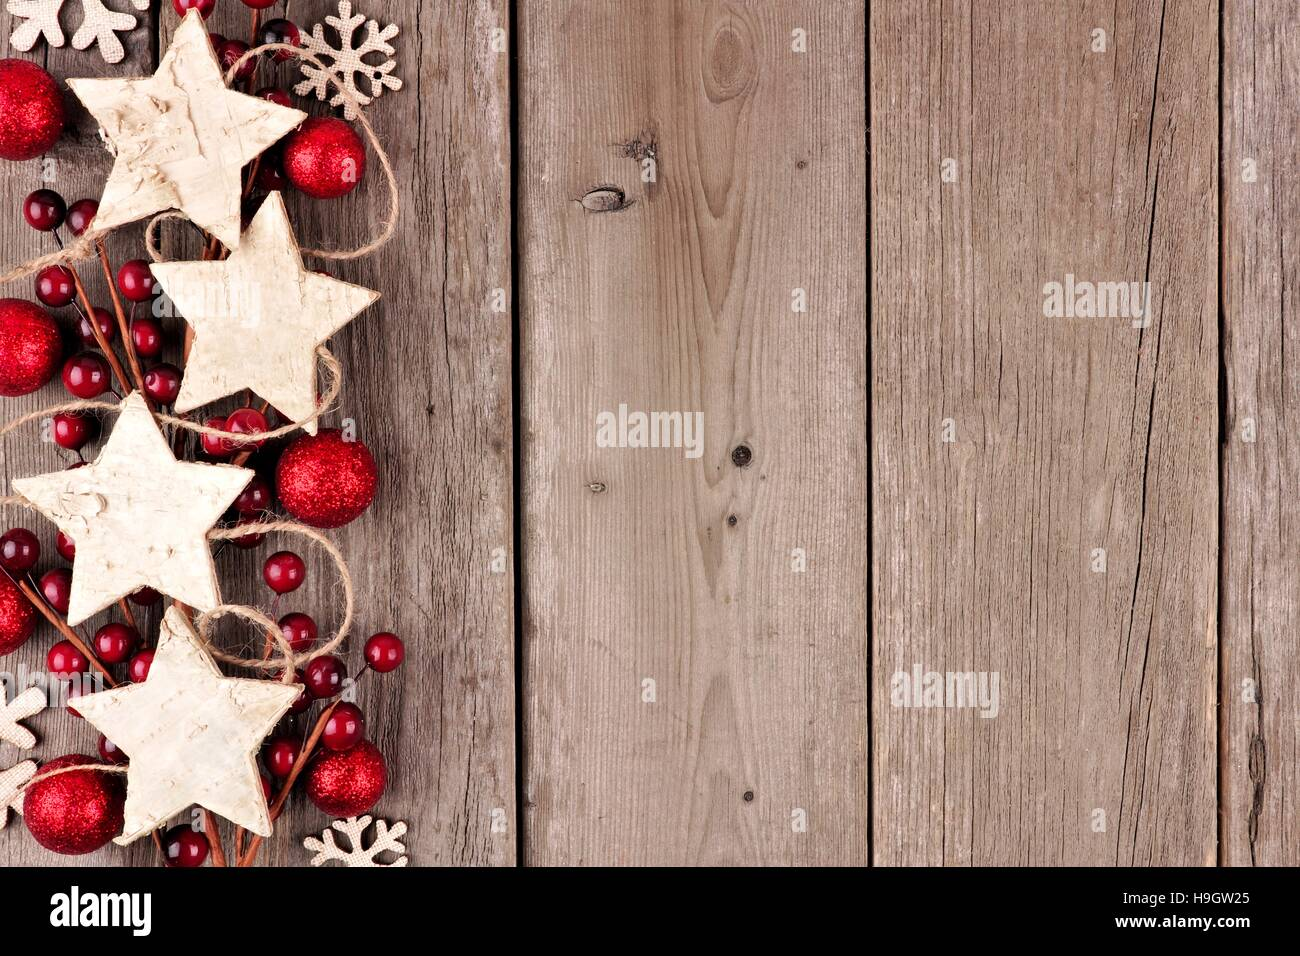 Rustic Christmas Side Border With Wood Star Ornaments And Baubles On An Aged Background